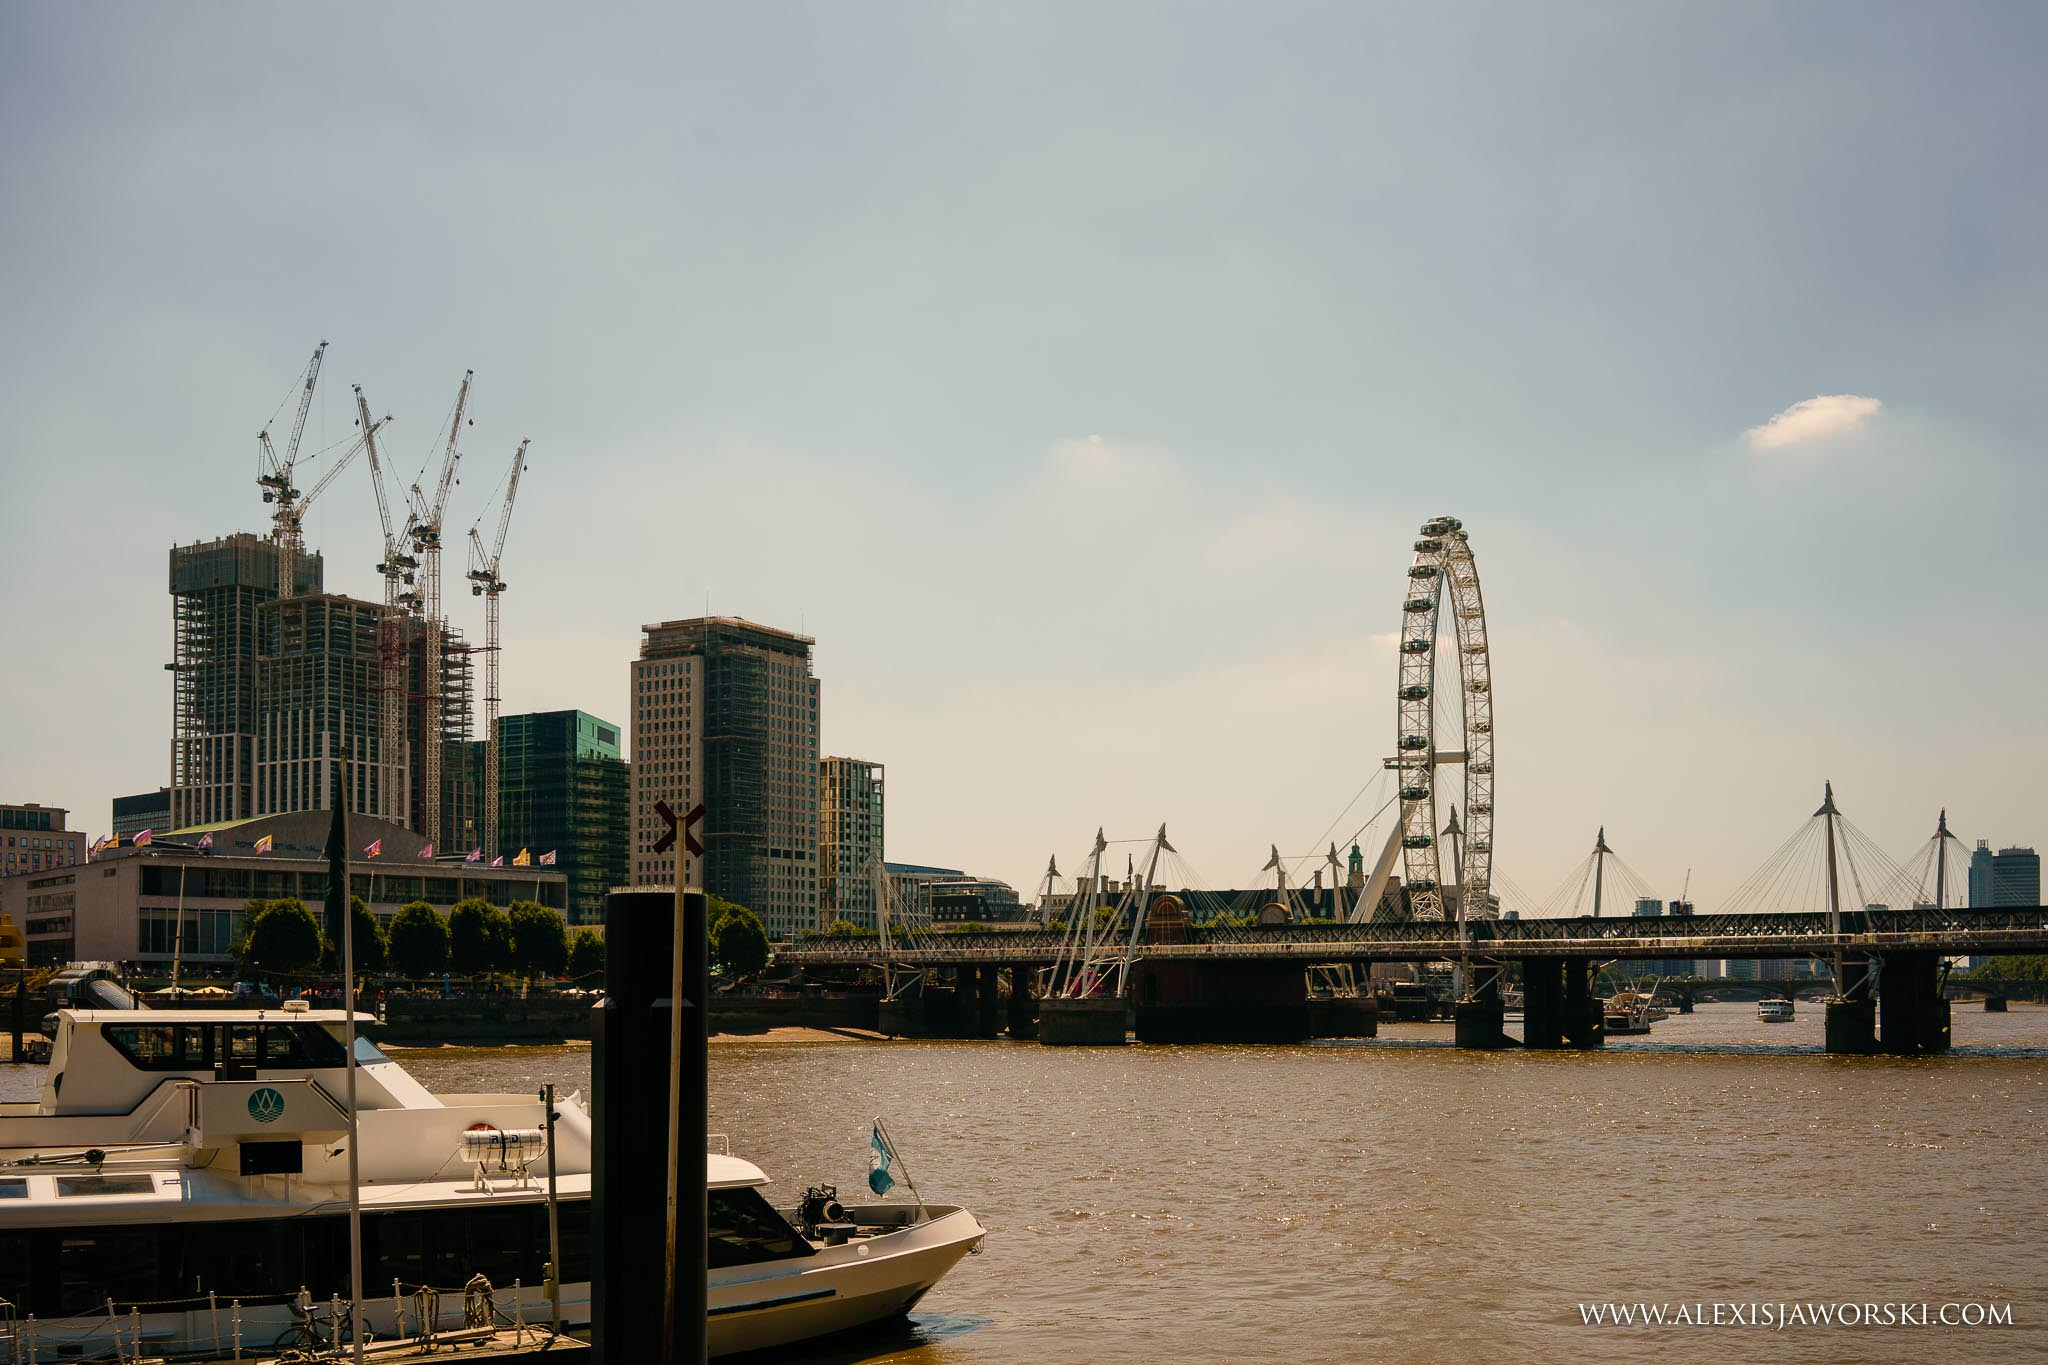 view from the Savoy Pier